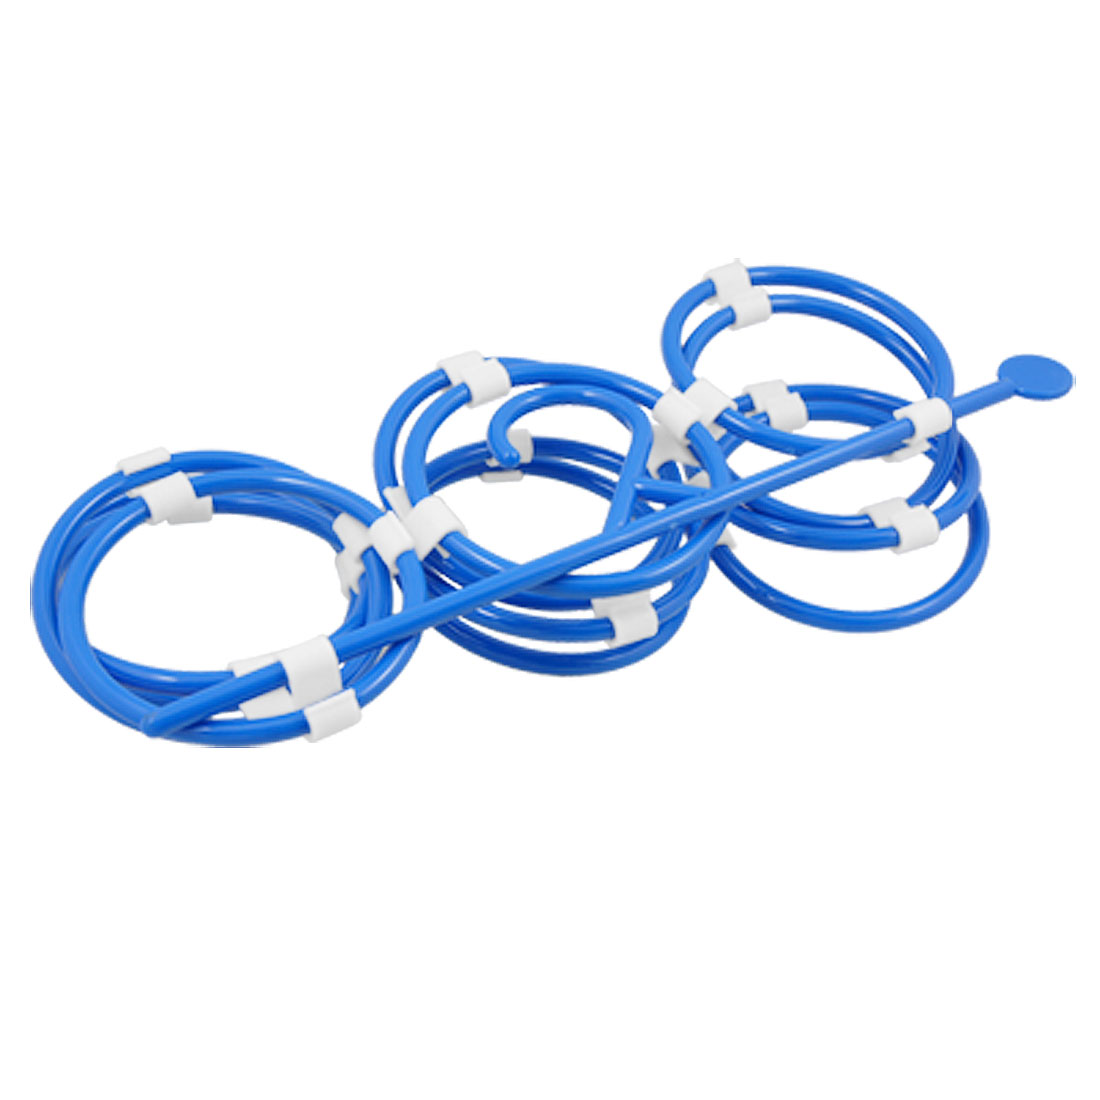 Multifunction Blue Plastic 12 Circles Tie Scarf Rack